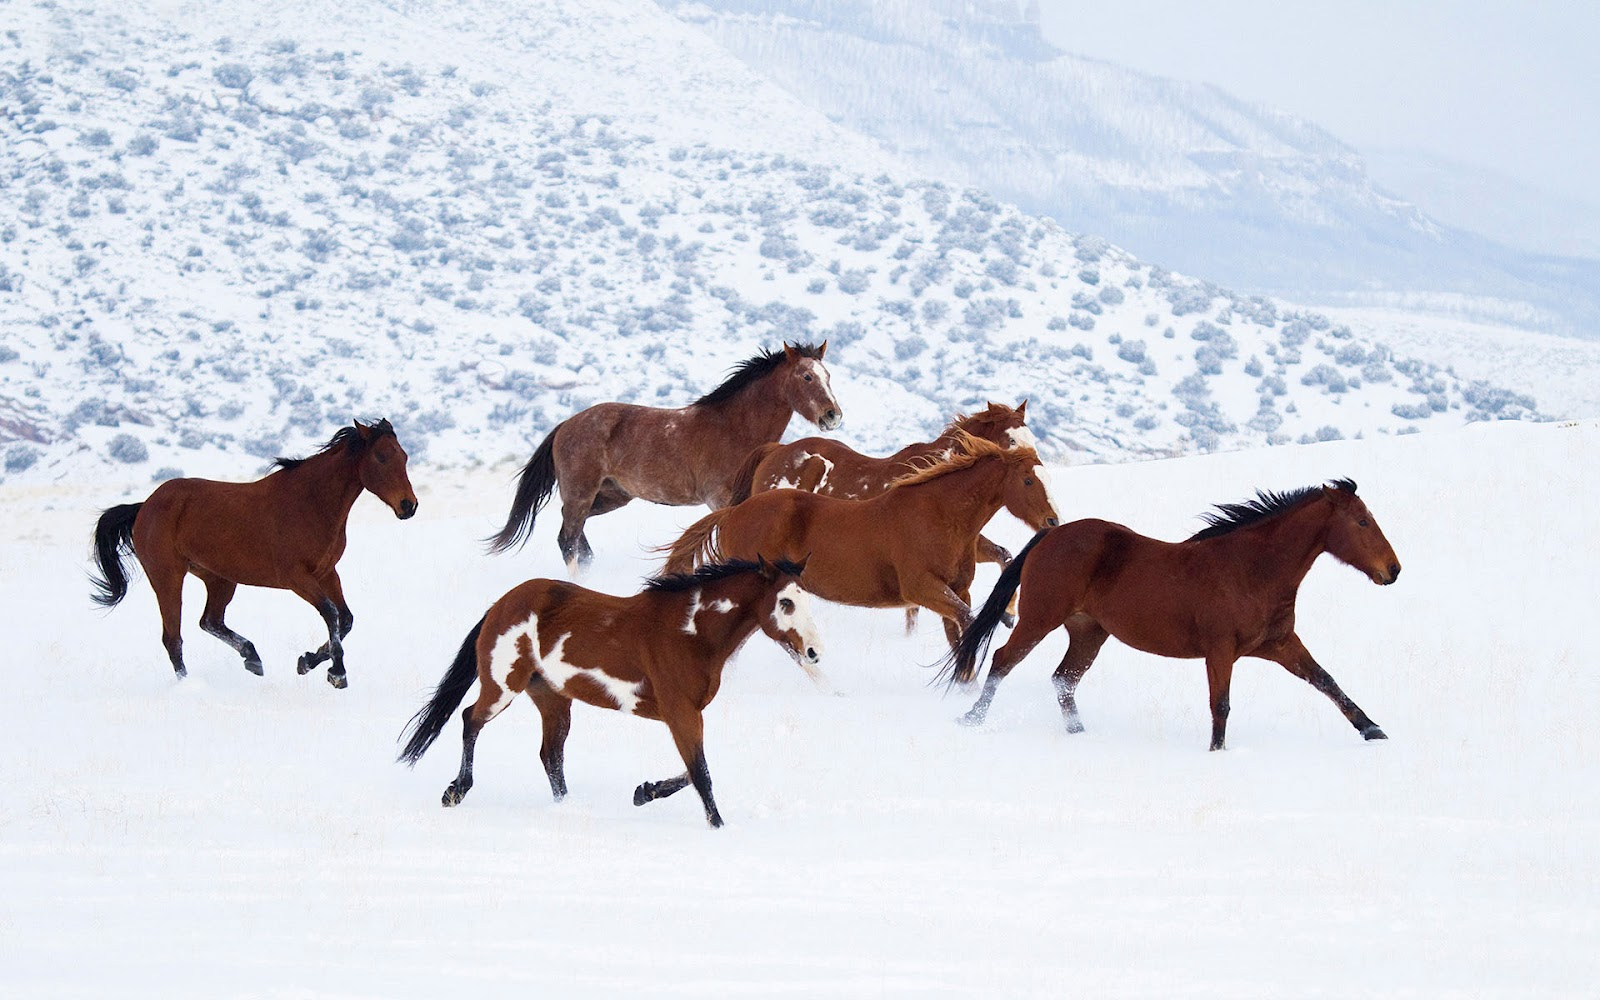 http://2.bp.blogspot.com/-lz4mtb4AFgc/UDeuVJVMFnI/AAAAAAAAA-o/Cuy2a4FZDOw/s1600/hd-horse-wallpaper-with-brown-horses-running-through-the-snow-hd-horse-background-picture-photo.jpg